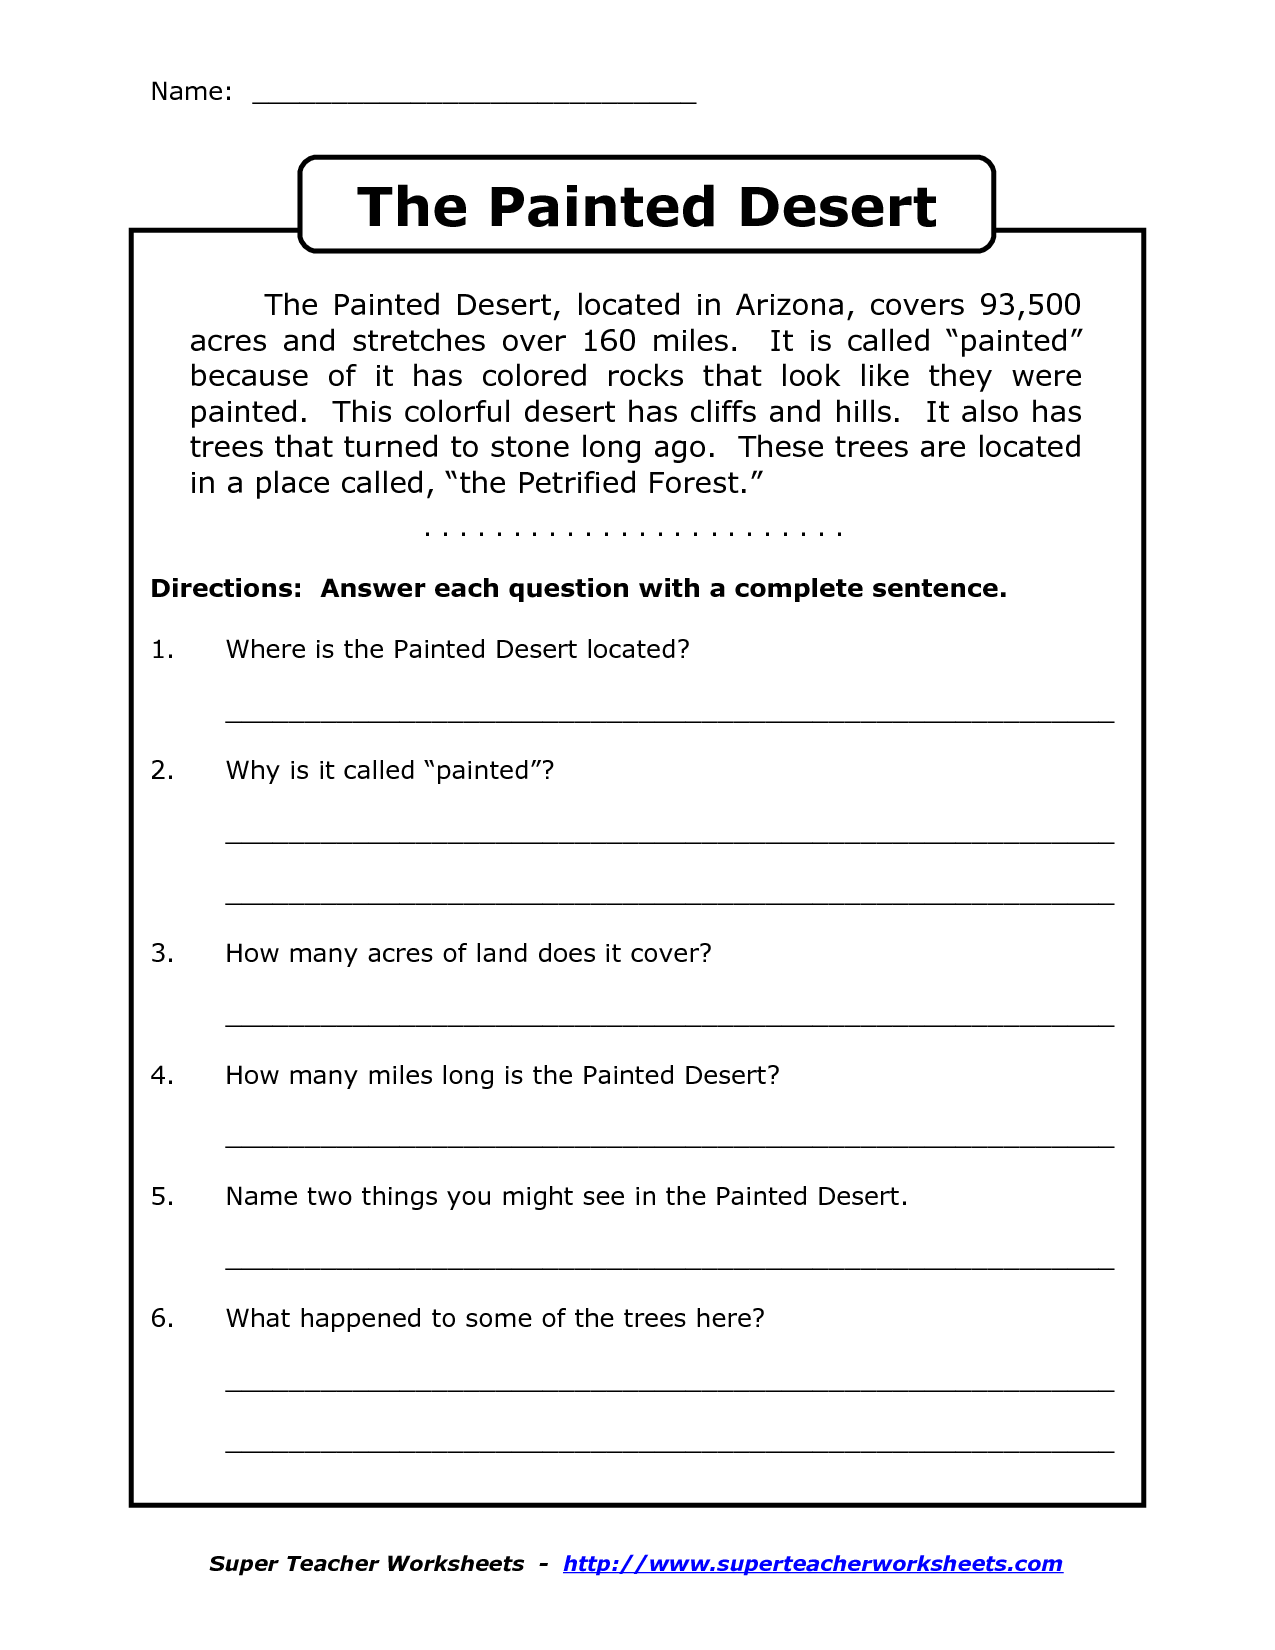 Worksheets Paragraph Comprehension Worksheets reading worksheets for 4th grade comprehension 3 name the painted desert